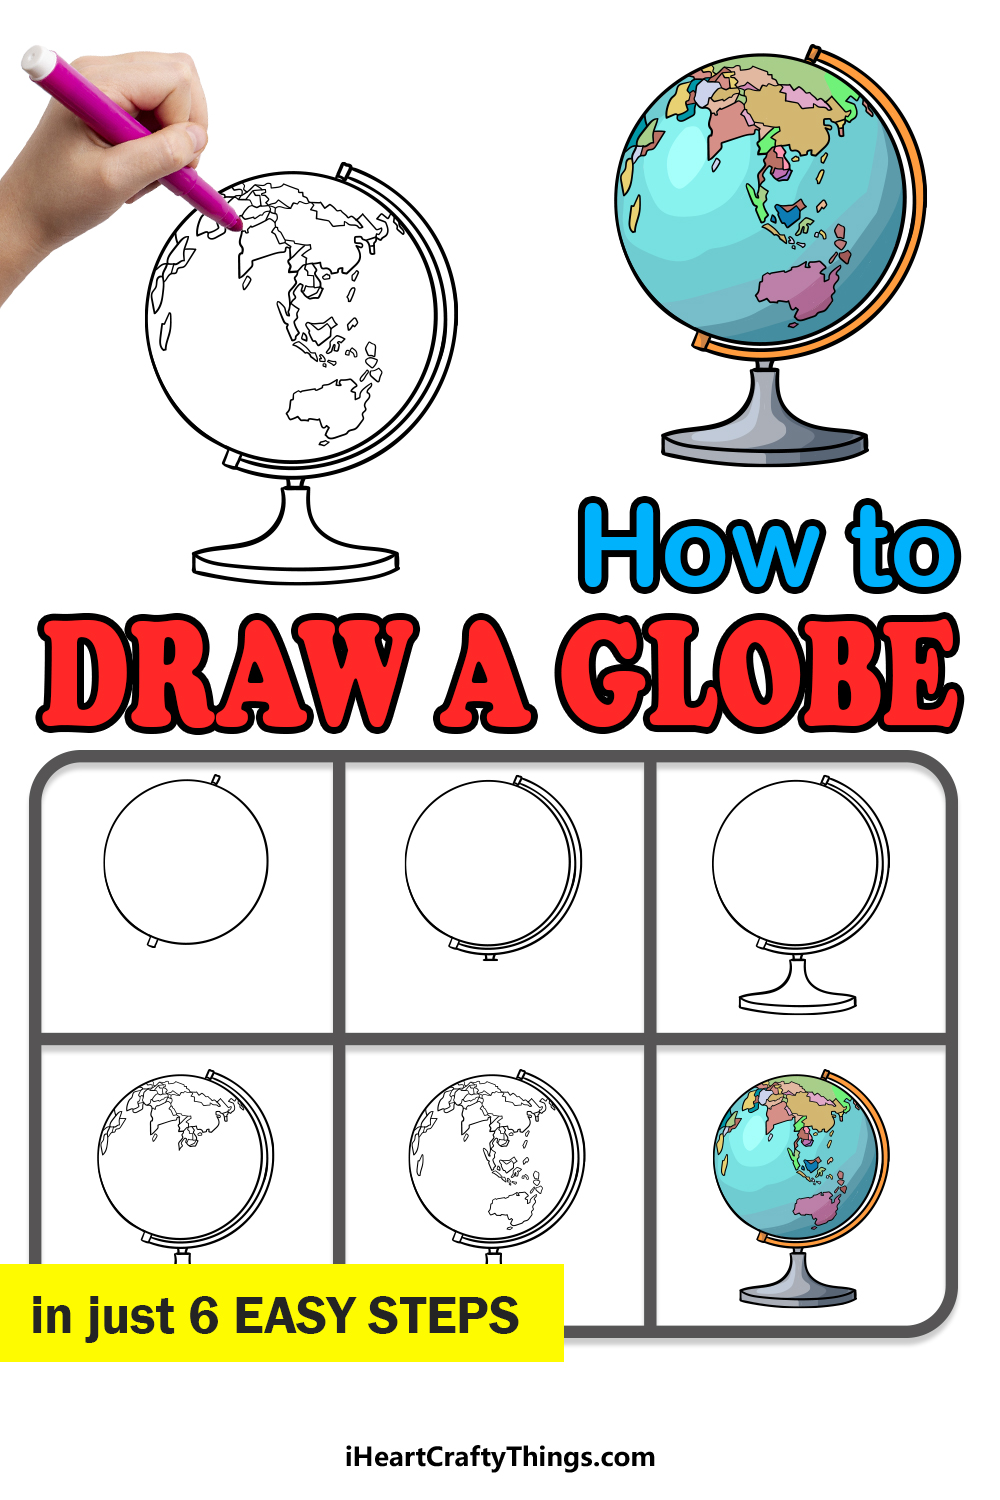 how to draw a globe in 6 easy steps